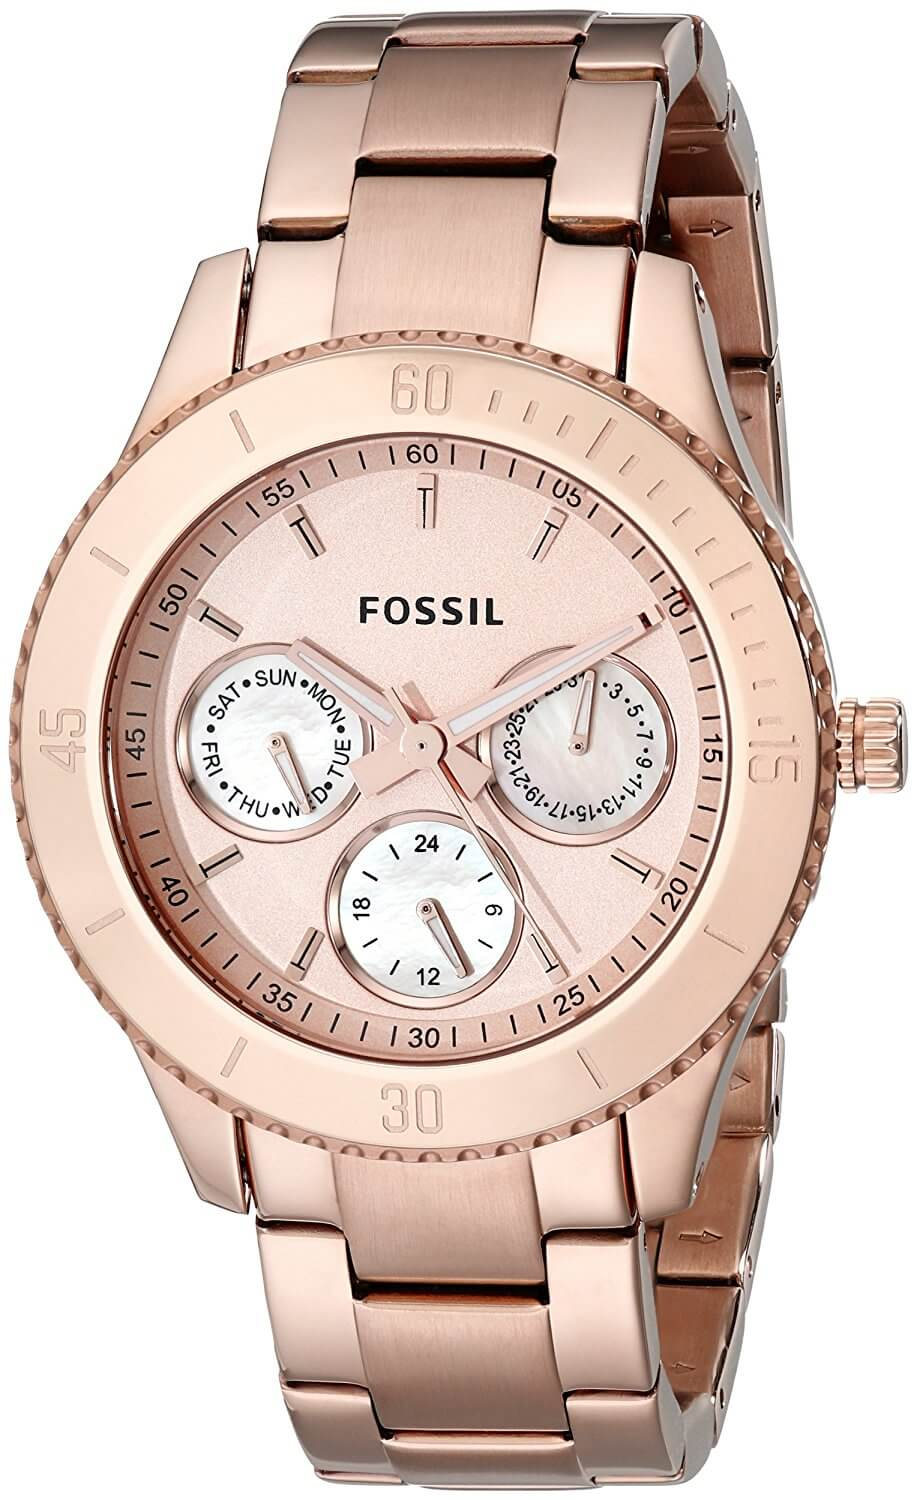 Fossil Analog & Chronograph Watches